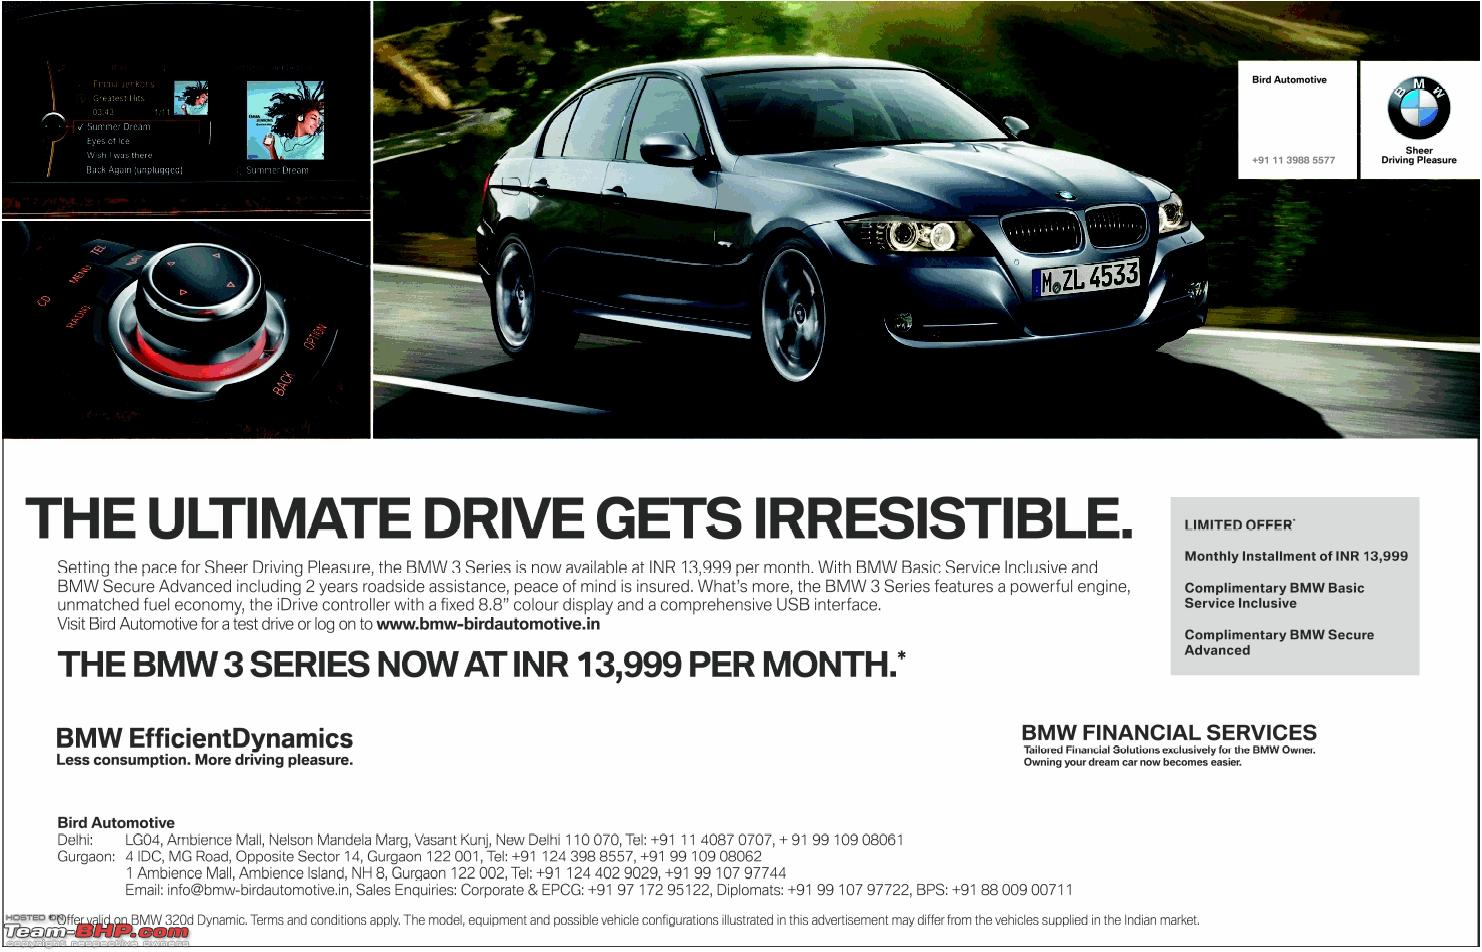 The BMW X1 at Rs.15,999 EMI (limited time offer) - Page 6 - Team-BHP